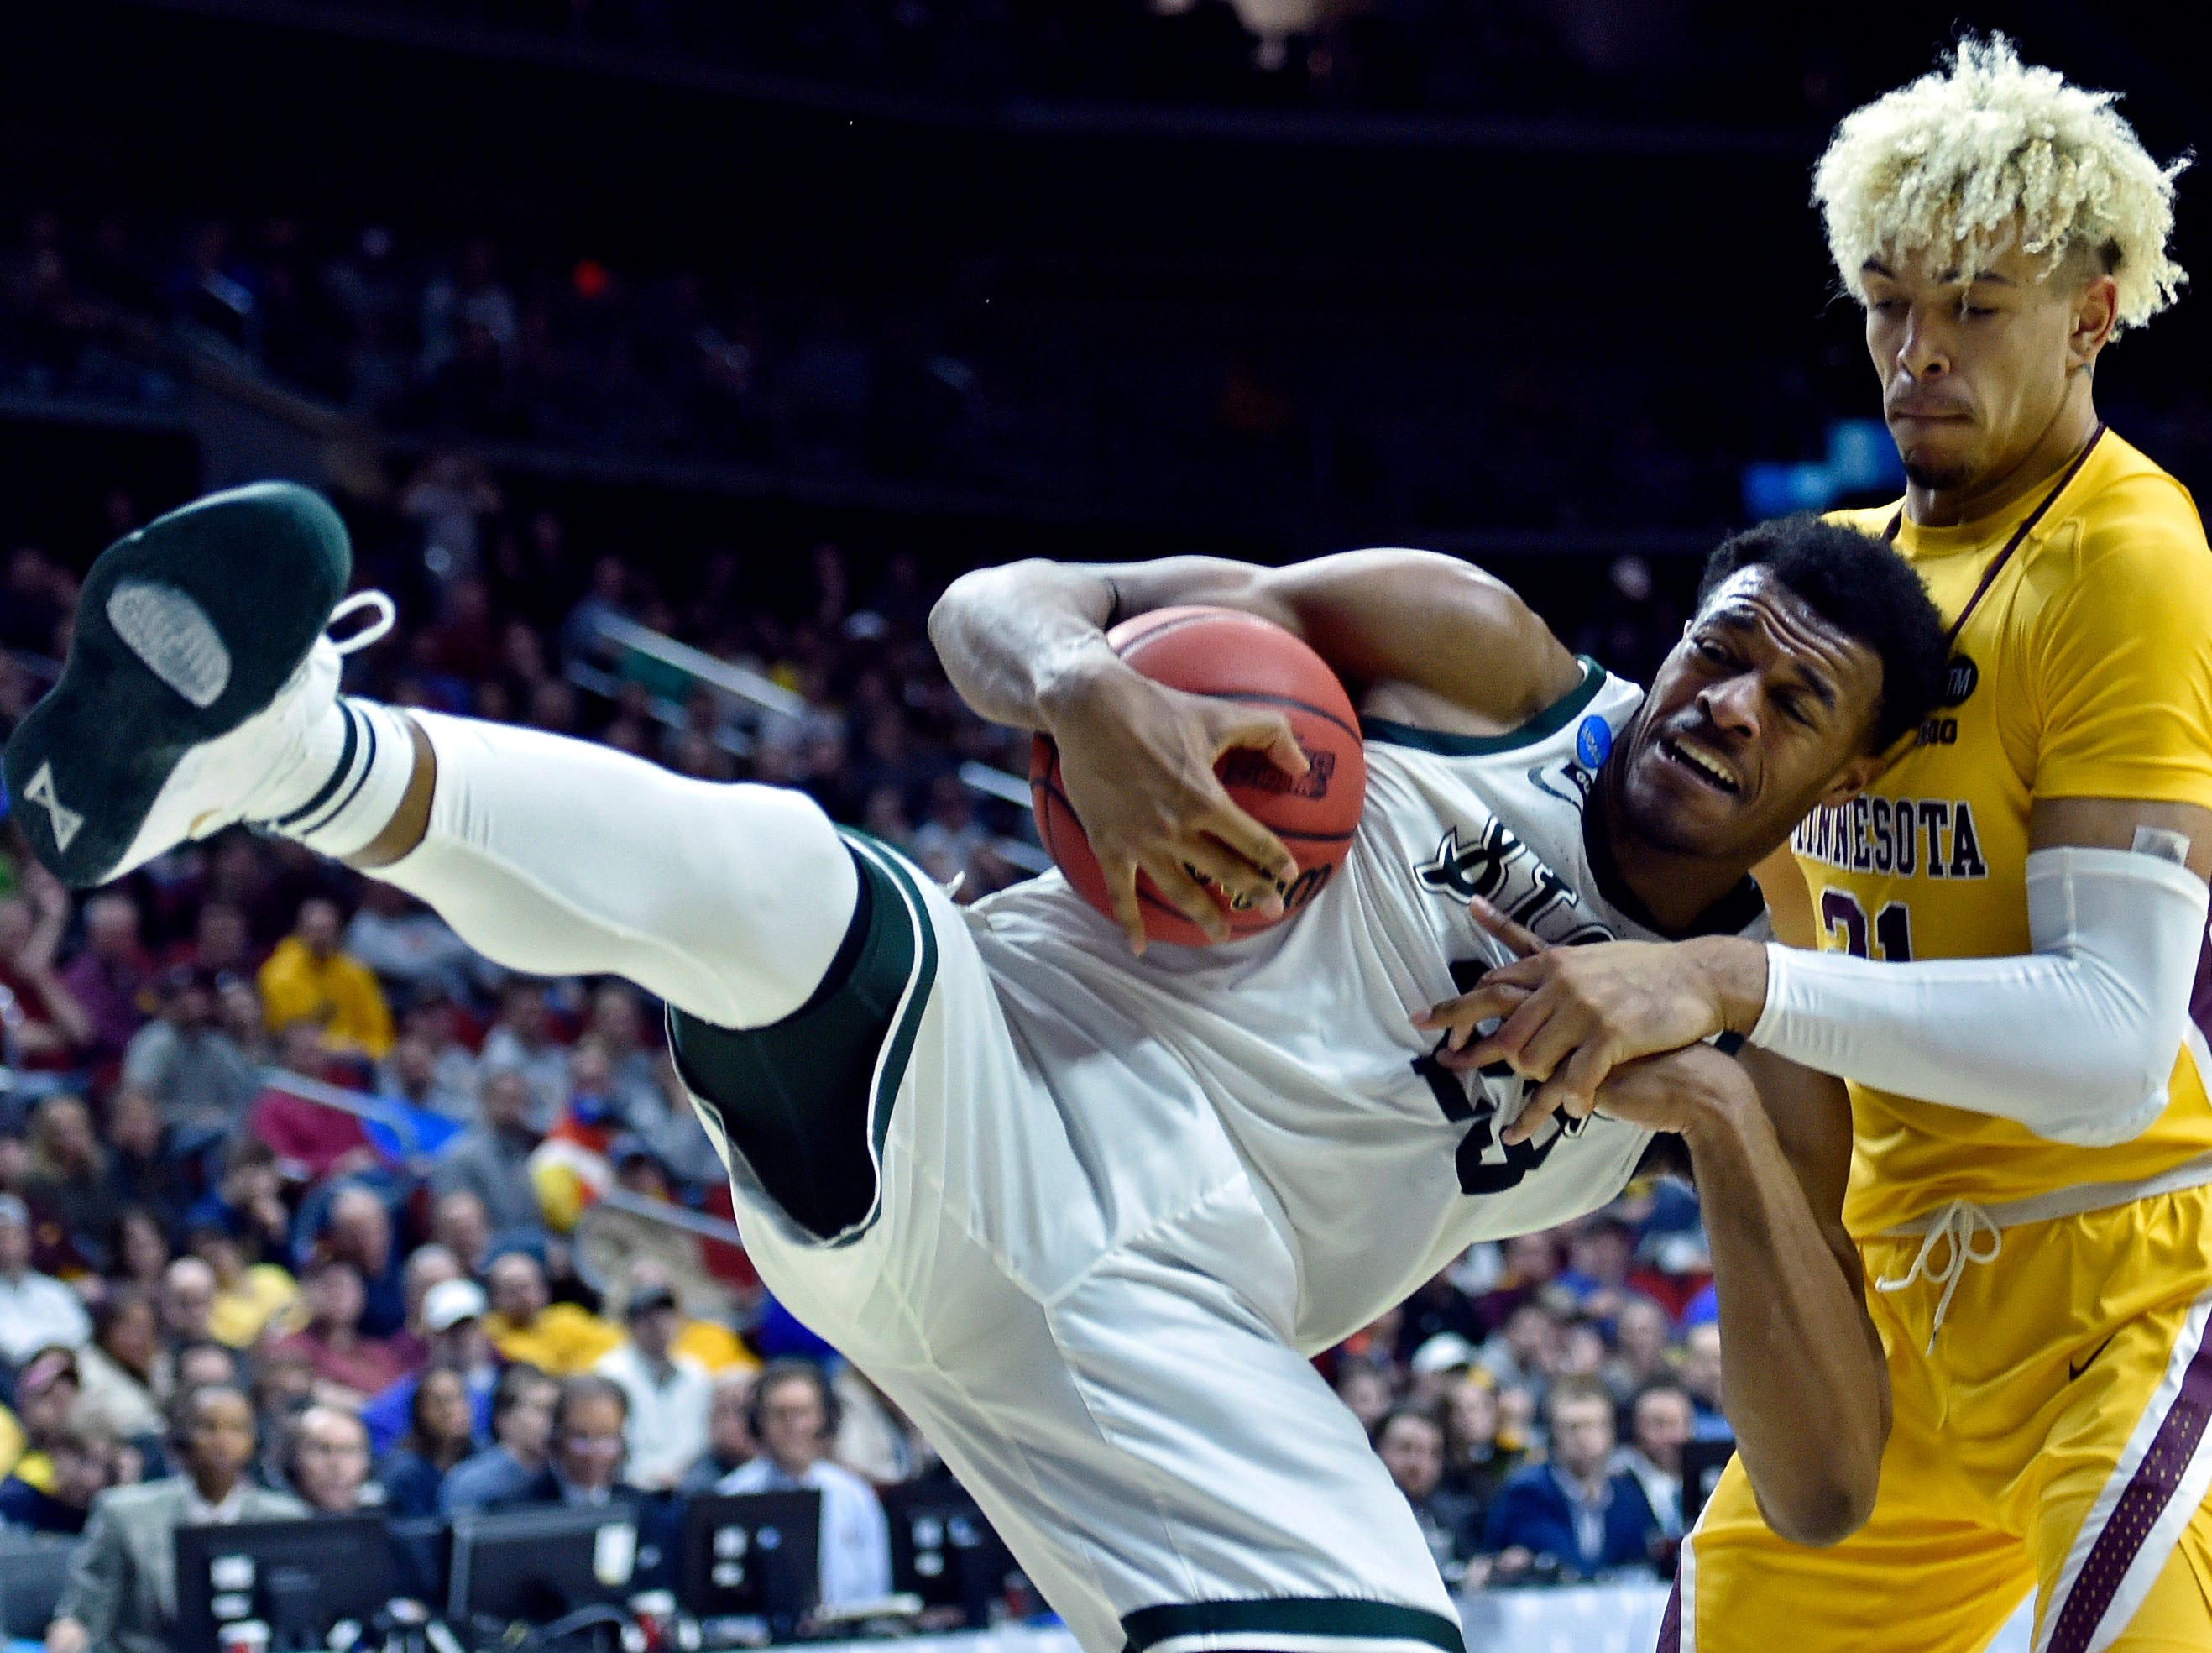 Mar 23, 2019; Des Moines, IA, United States; Michigan State Spartans forward Xavier Tillman (23) and Minnesota Golden Gophers forward Jarvis Omersa (21) go for a rebound during the second half in the second round of the 2019 NCAA Tournament at Wells Fargo Arena. Mandatory Credit: Jeffrey Becker-USA TODAY Sports